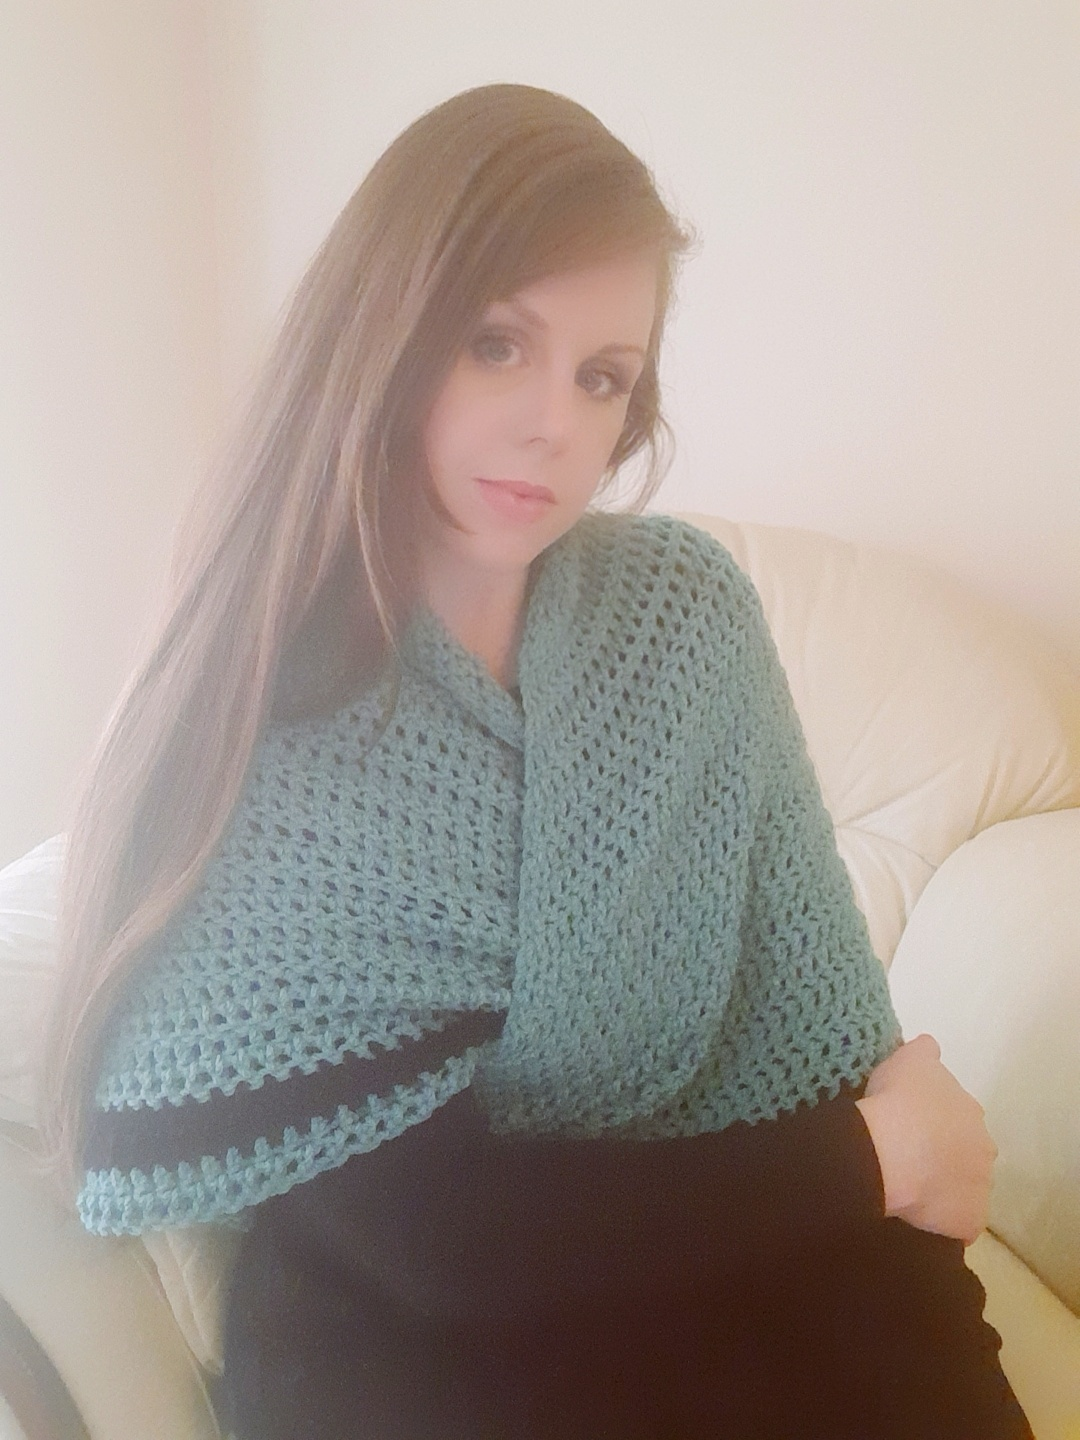 Crochet The Claire Shawl from Outlander